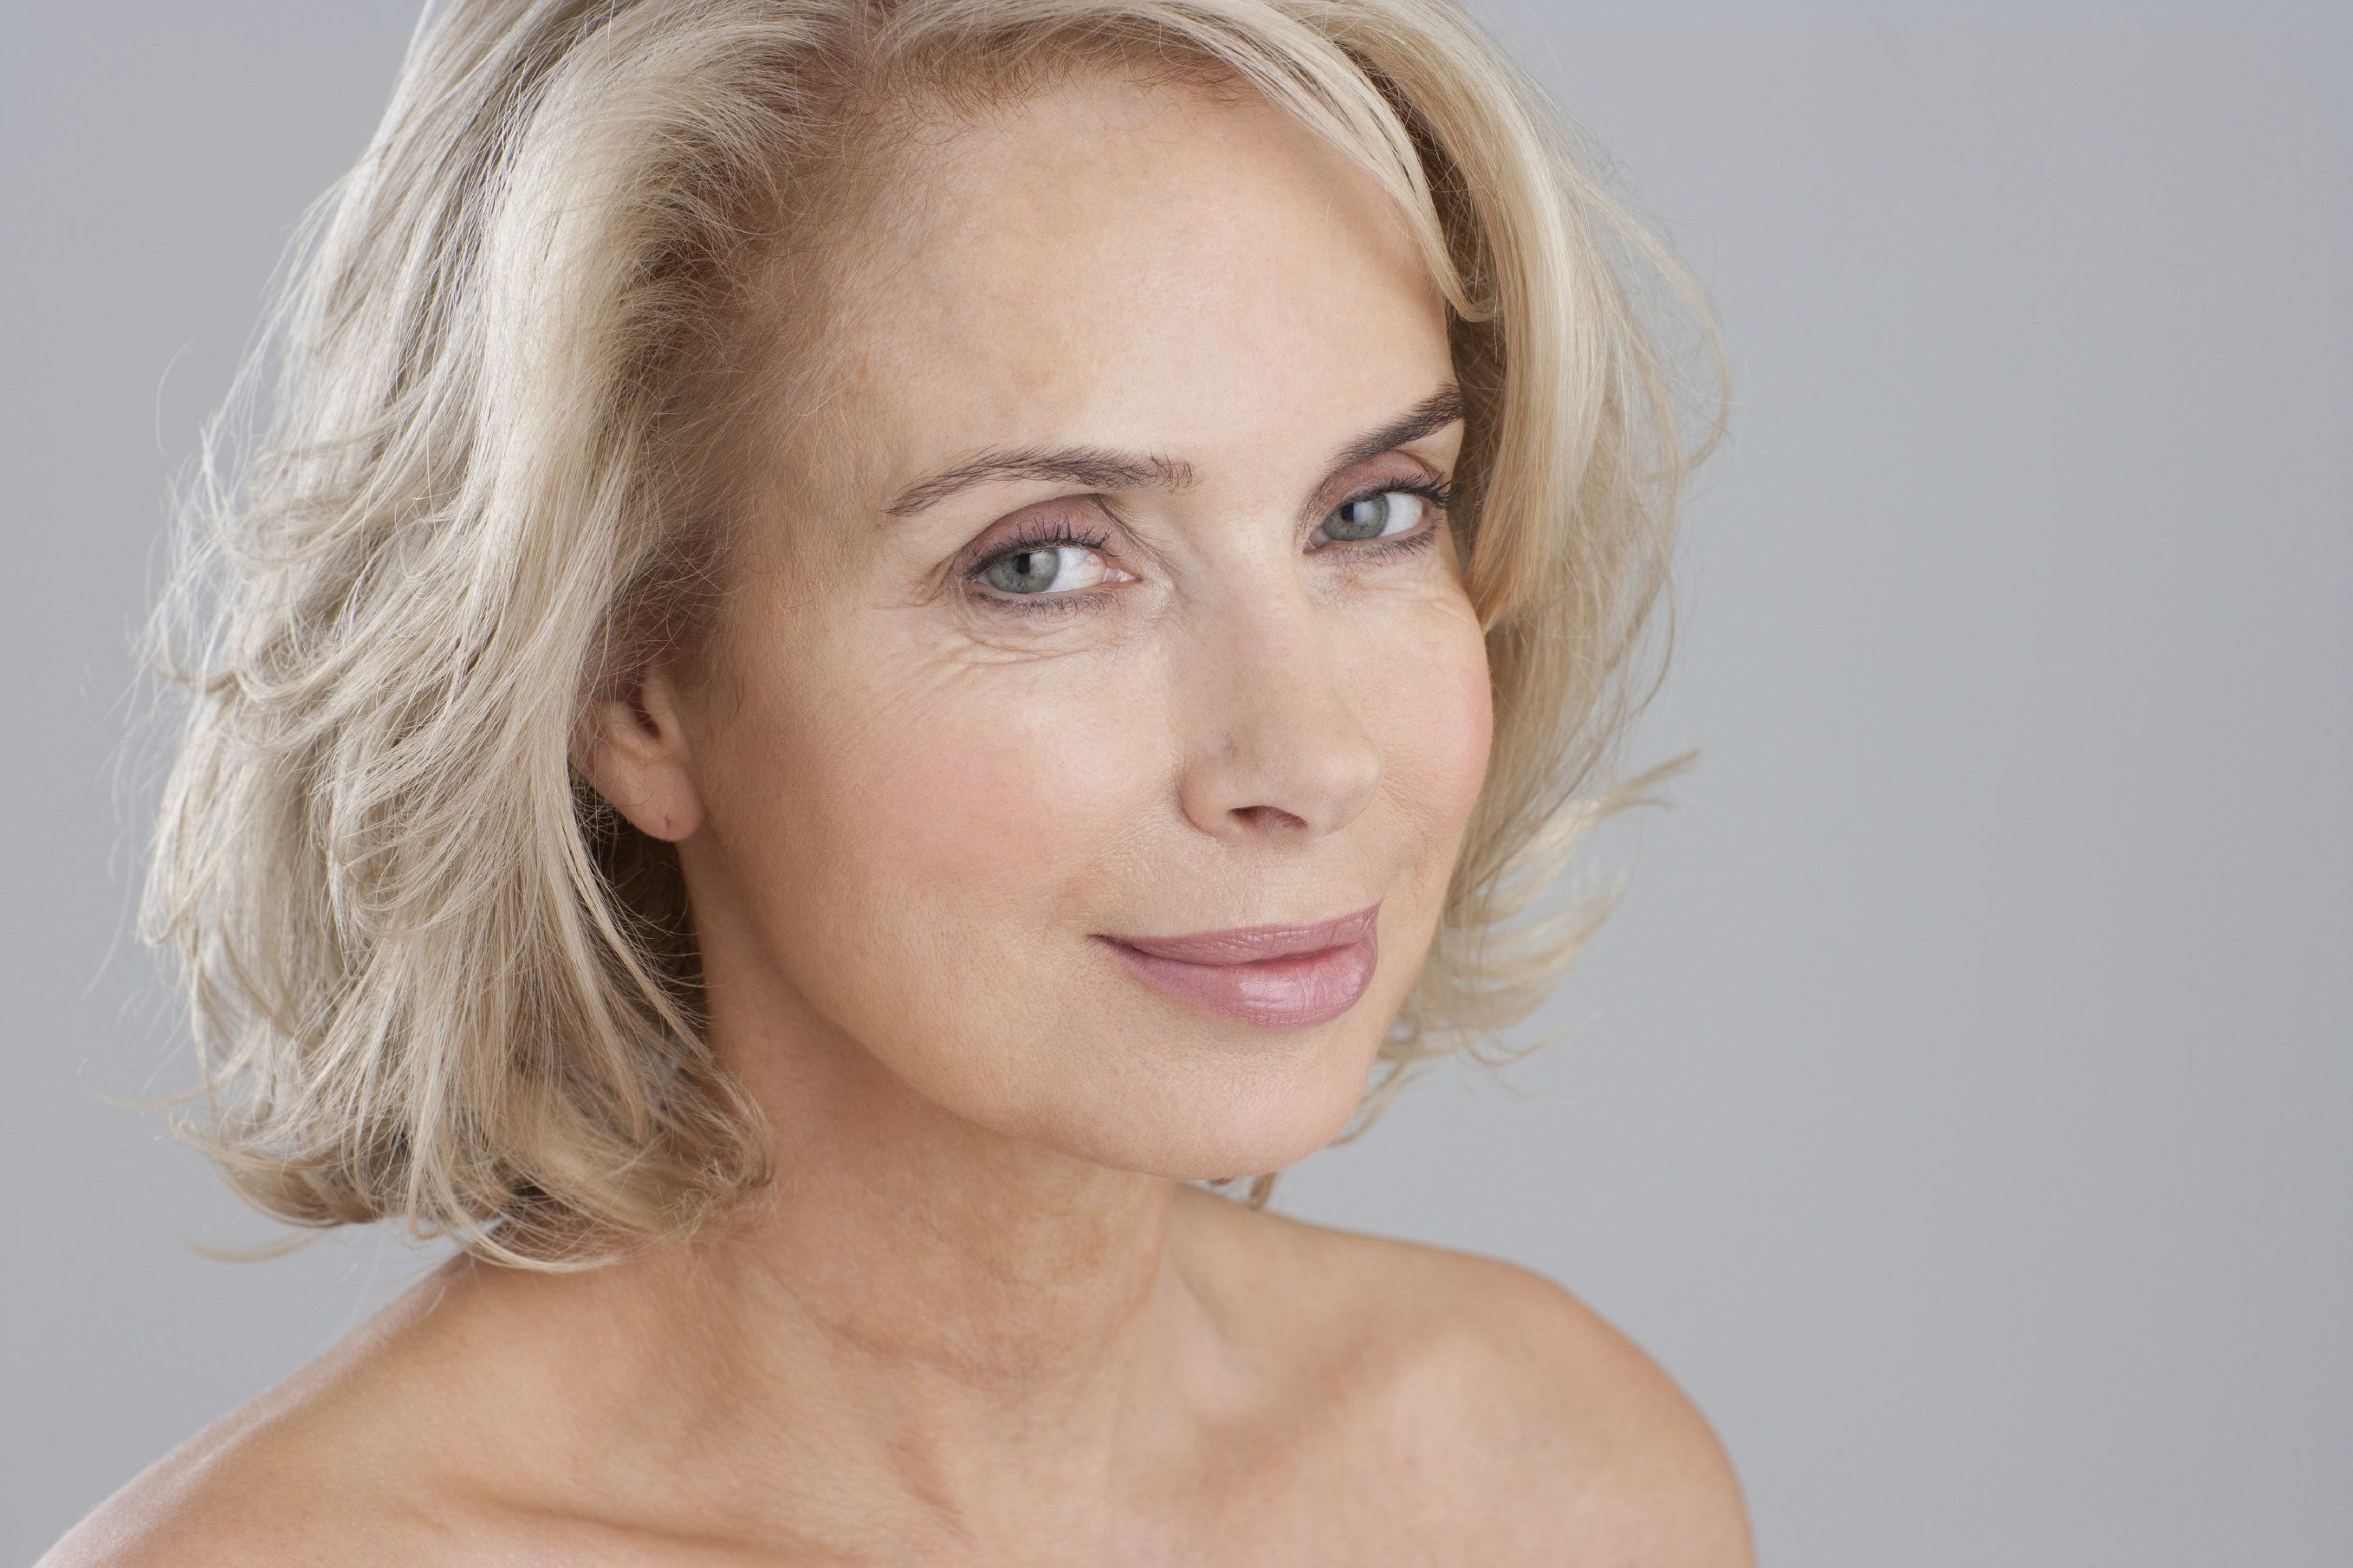 A woman in her 60s but looking much younger thanks to exquisite plastic surgery